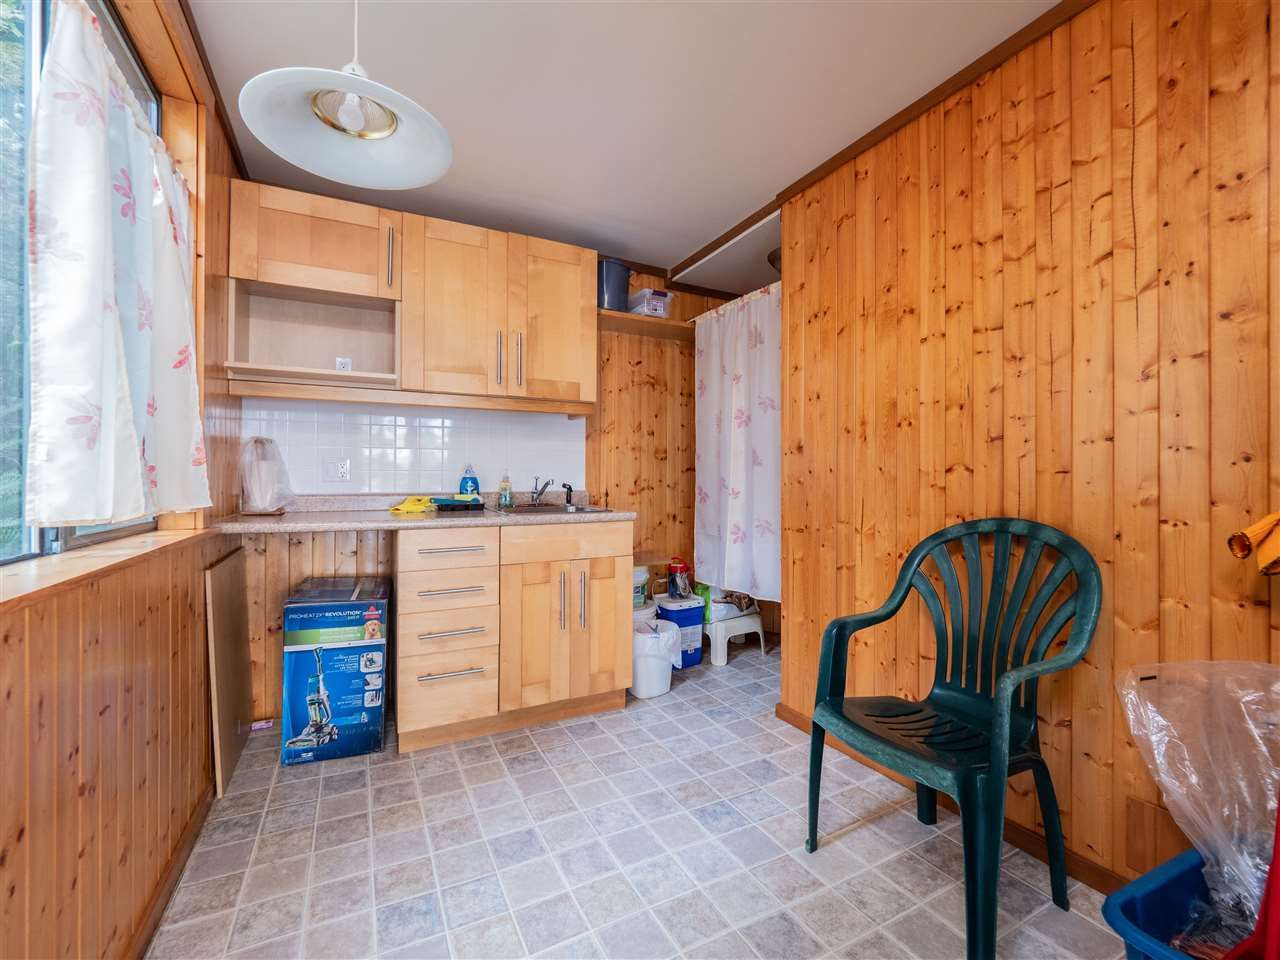 Photo 3: Photos: 4216 FRANCIS PENINSULA Road in Madeira Park: Pender Harbour Egmont House for sale (Sunshine Coast)  : MLS®# R2549311